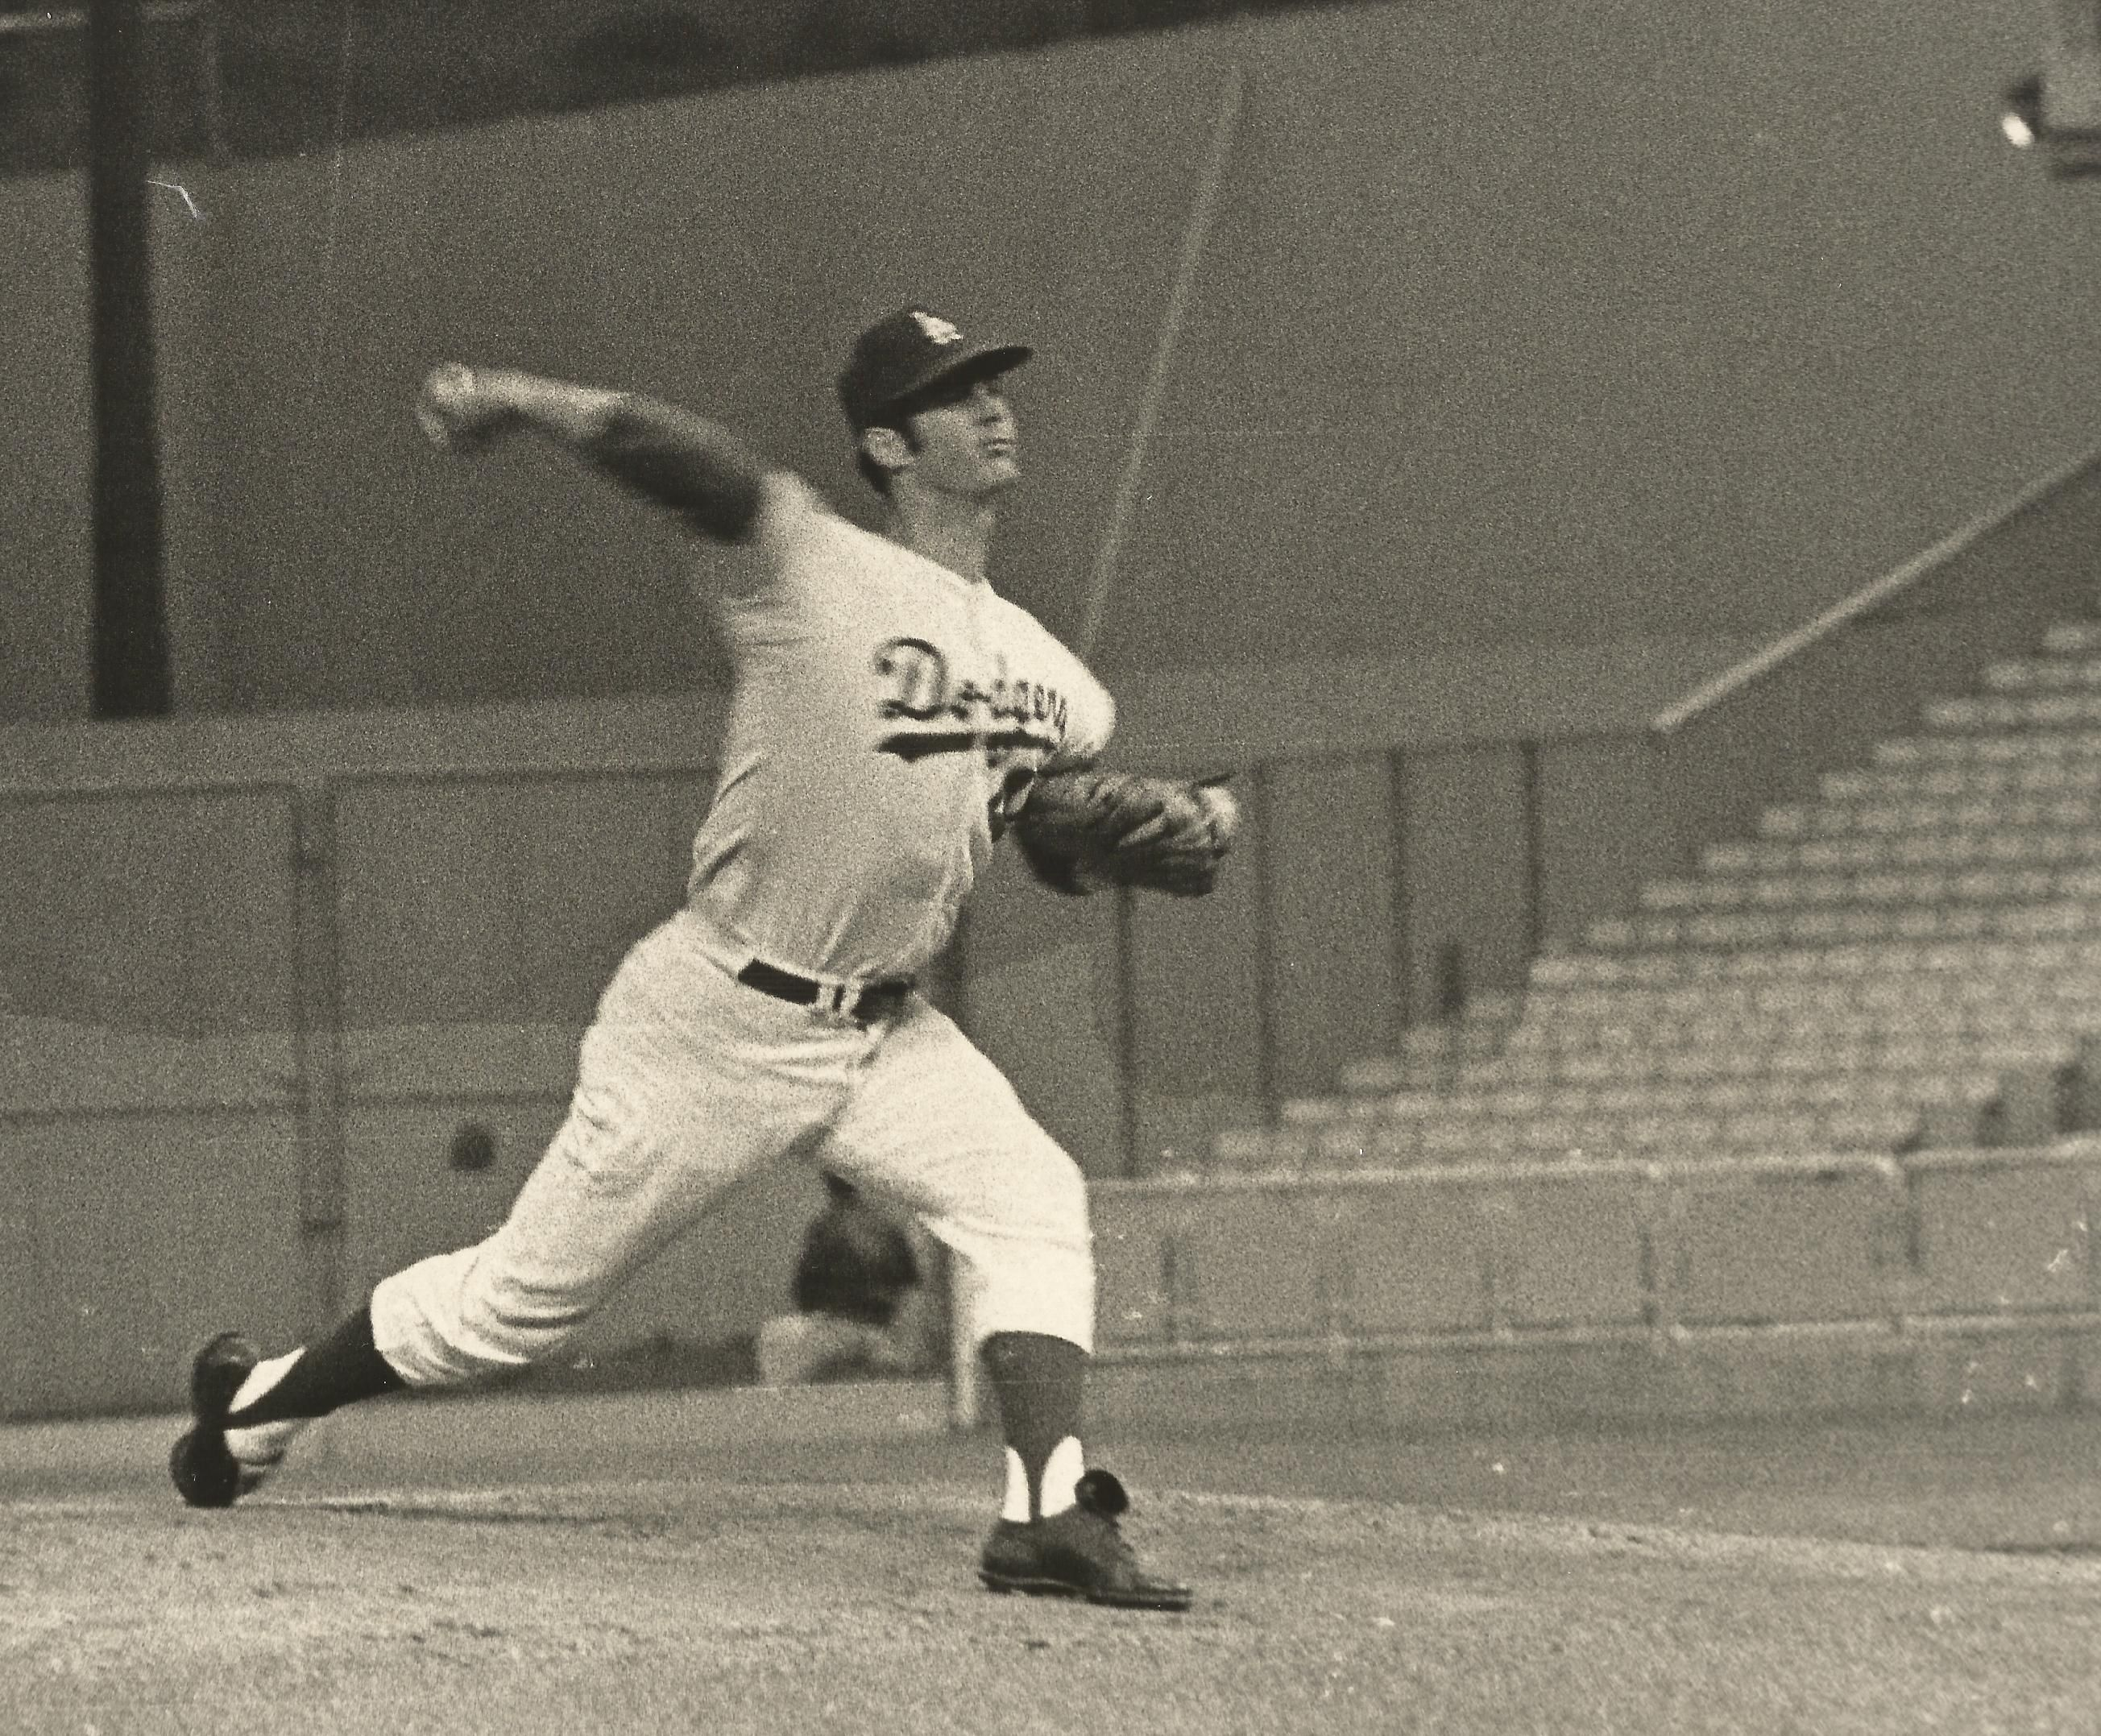 Dodger Pitcher Bill Singer He Recorded The First Official Recorded Save In Major League Baseball In A Game Don Drysdale Dodgers Baseball La Dodgers Players